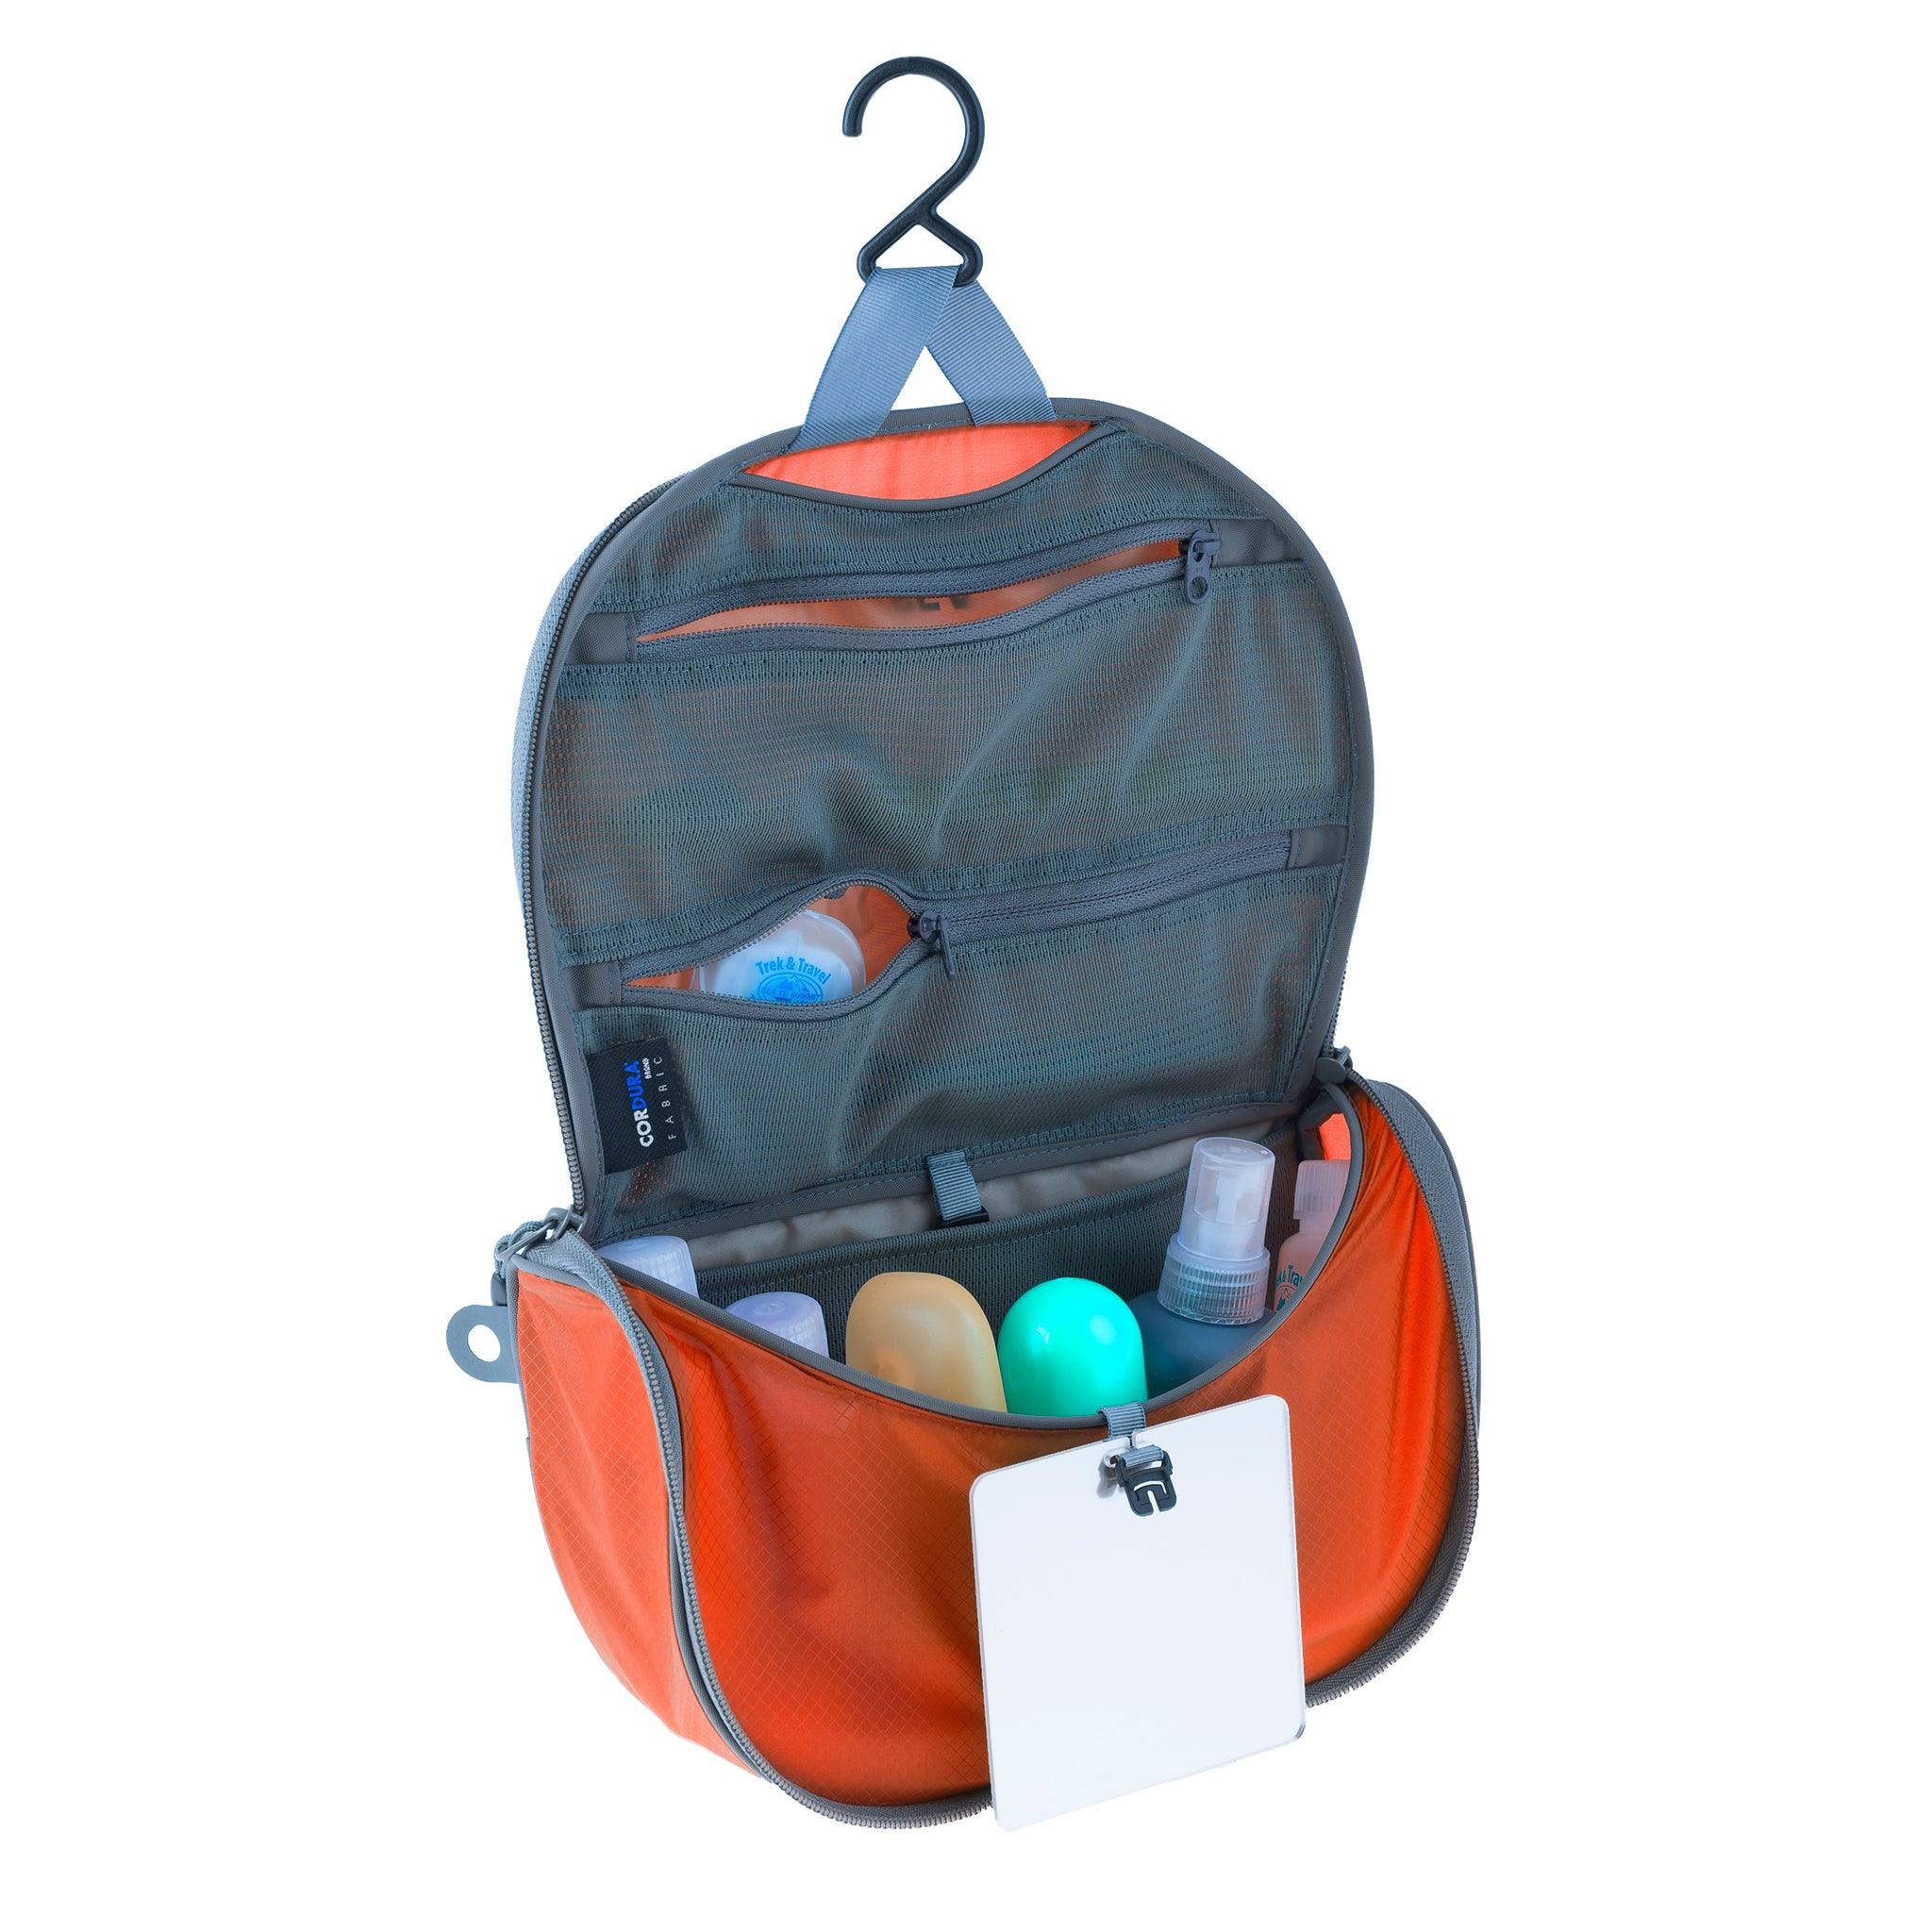 Travelling Light _ Hanging Travel Toiletry Bag _ Orange